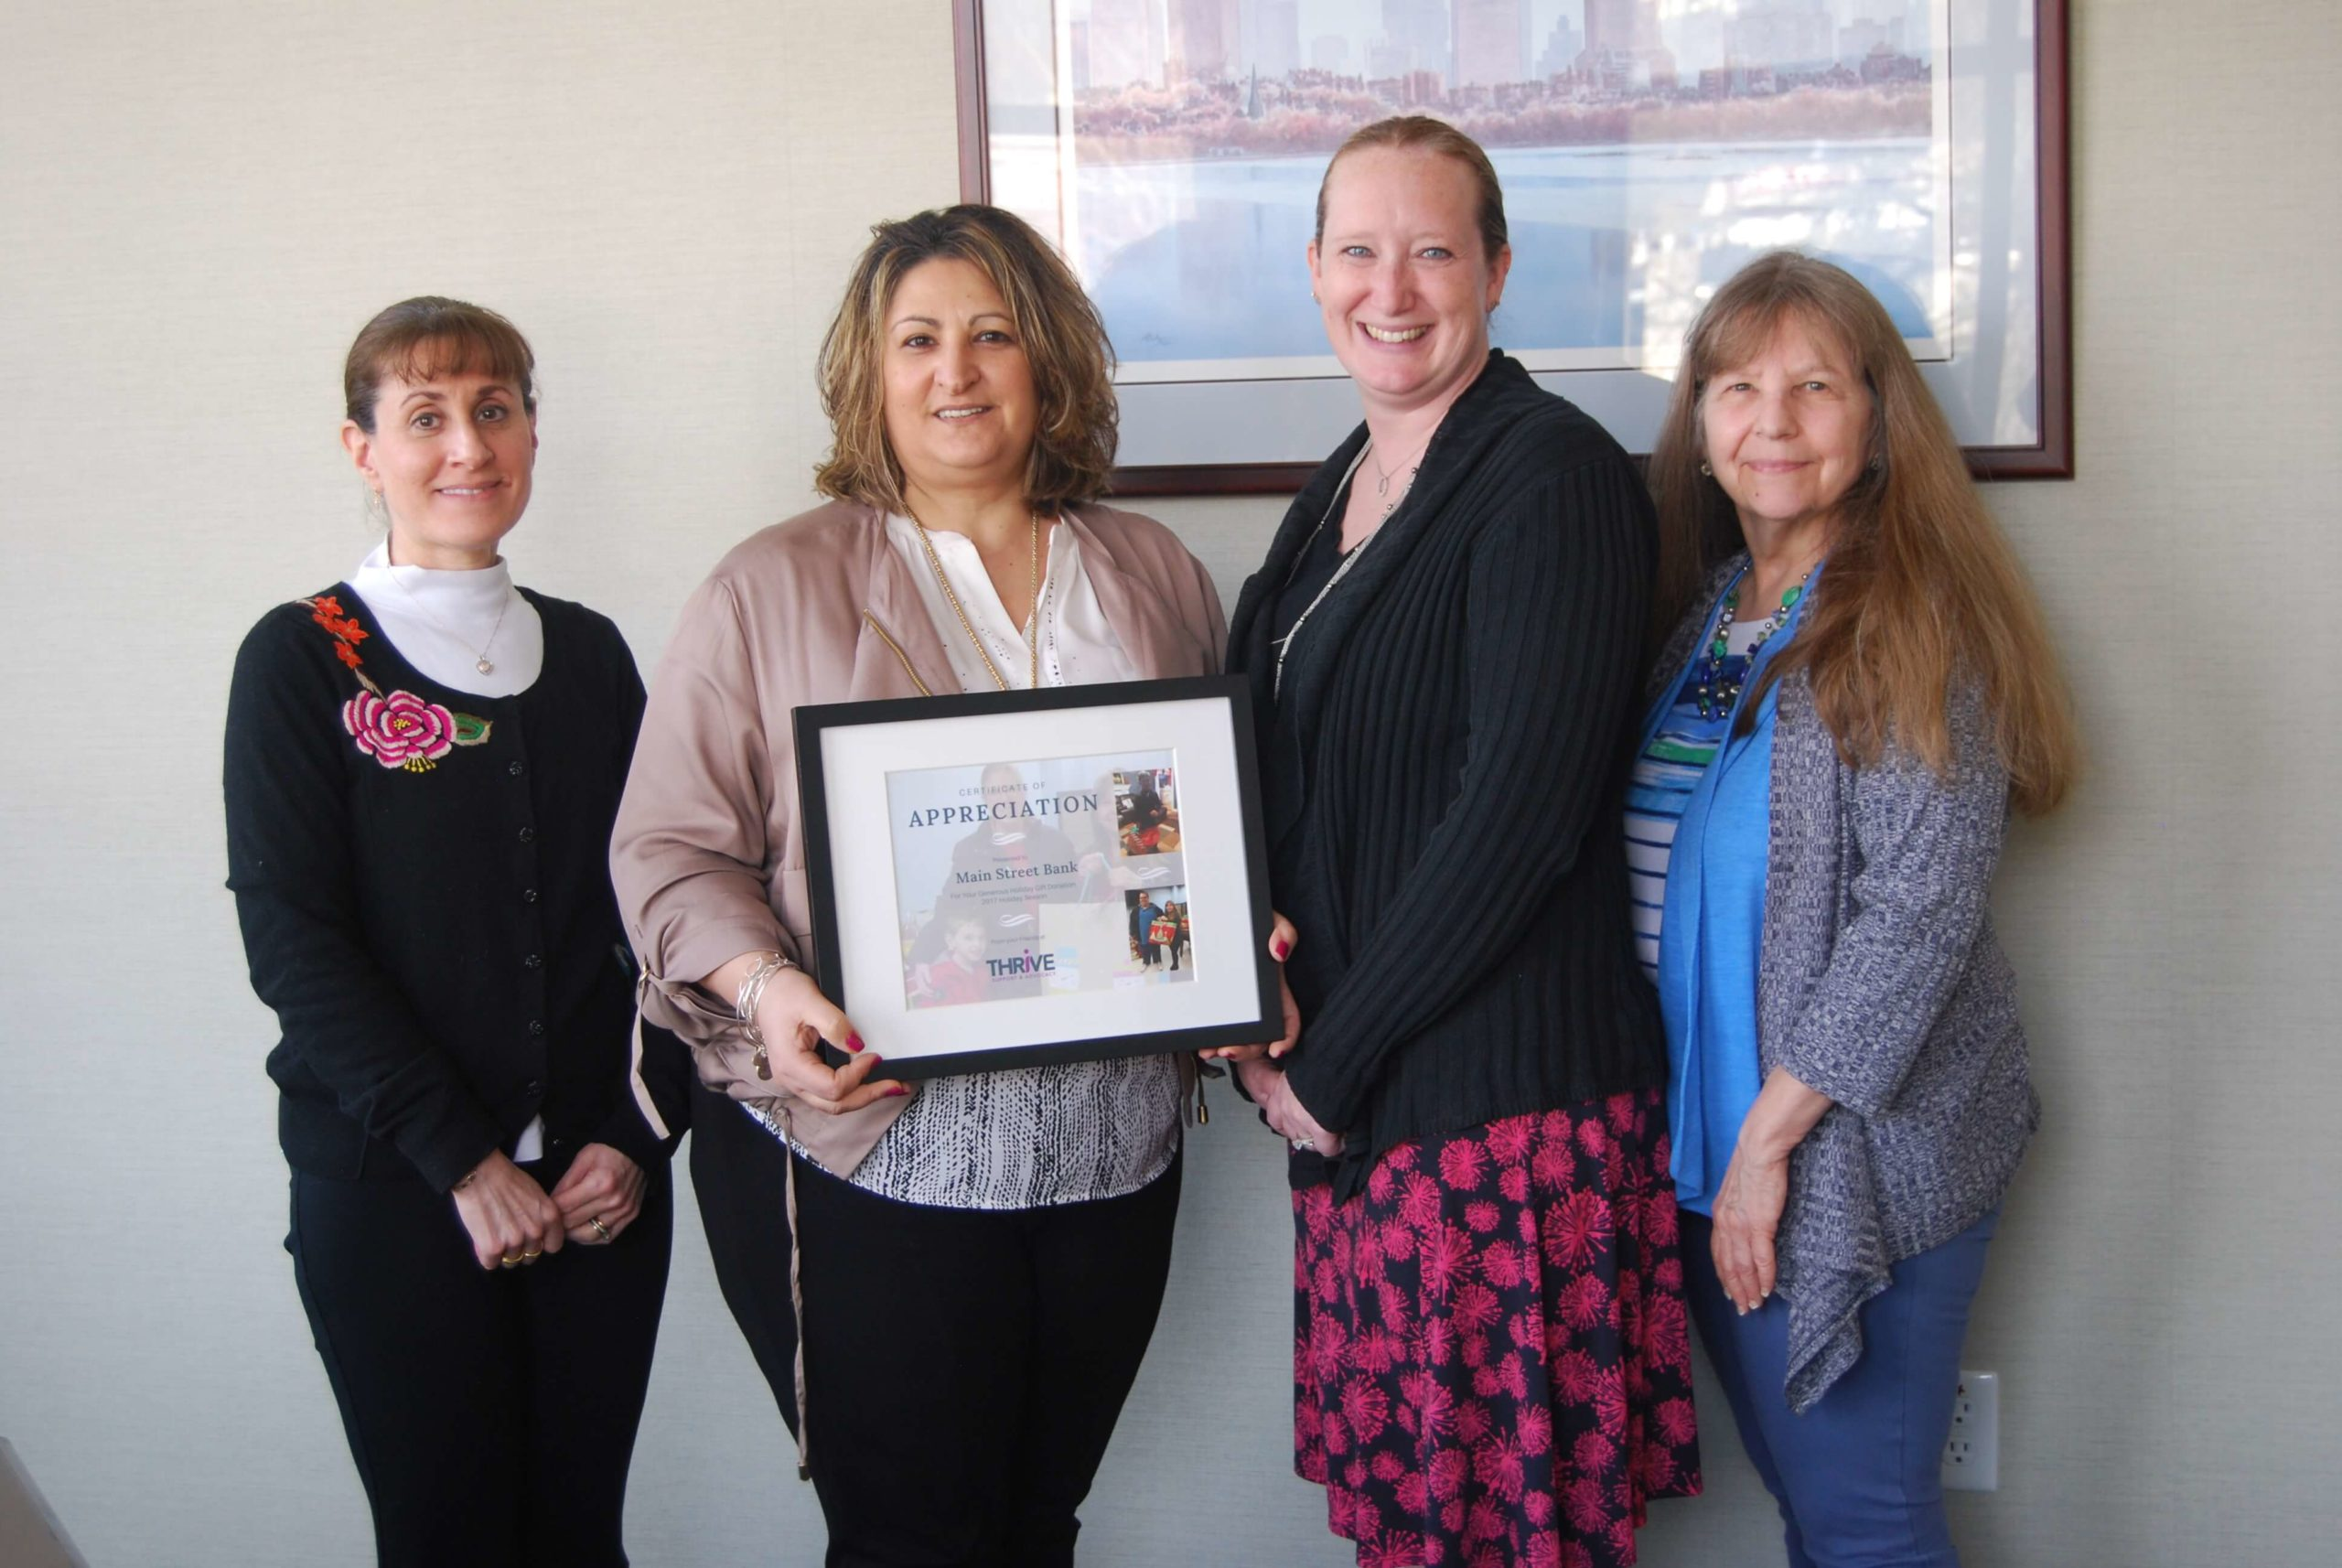 Thrive presentation of appreciation certificate for holiday gift drive participation